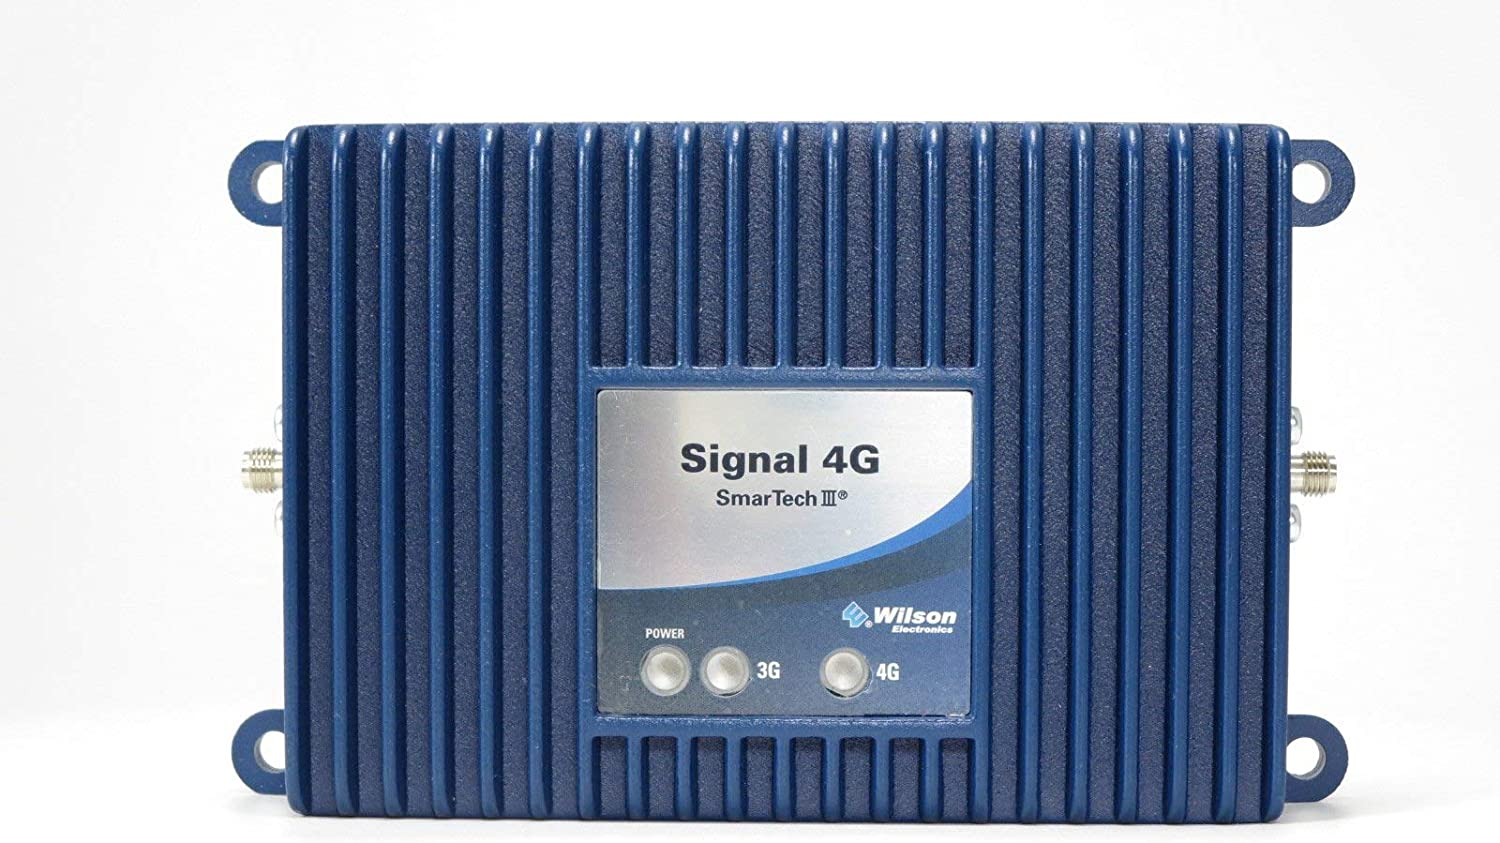 WilsonPro Signal 4G Direct Connect In-Line Booster Amplifier AC/DC Kit for M2M (Model 460119) (Renewed)